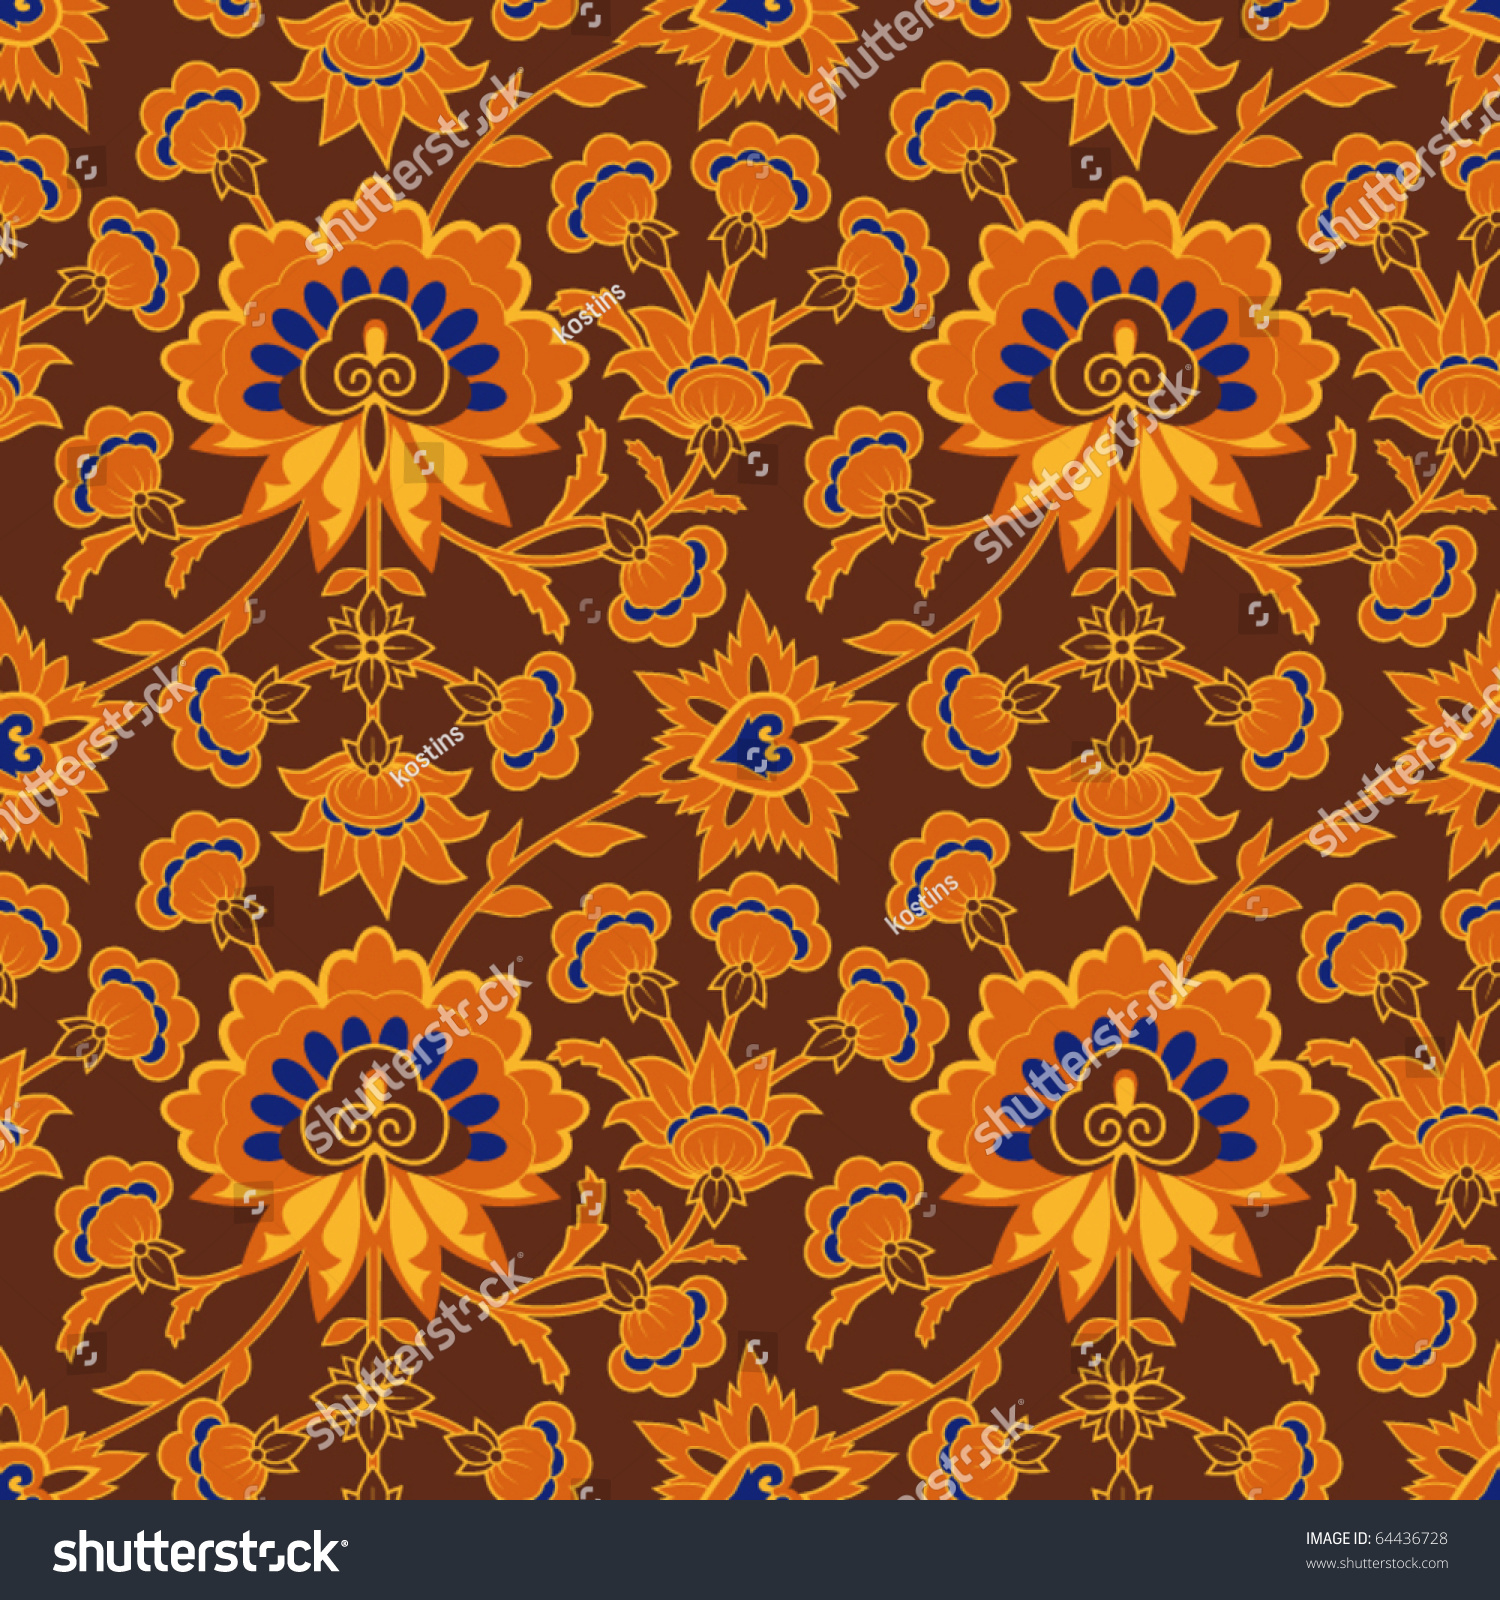 vintage floral brown css html brown wallpaper pattern in vintage style with floral